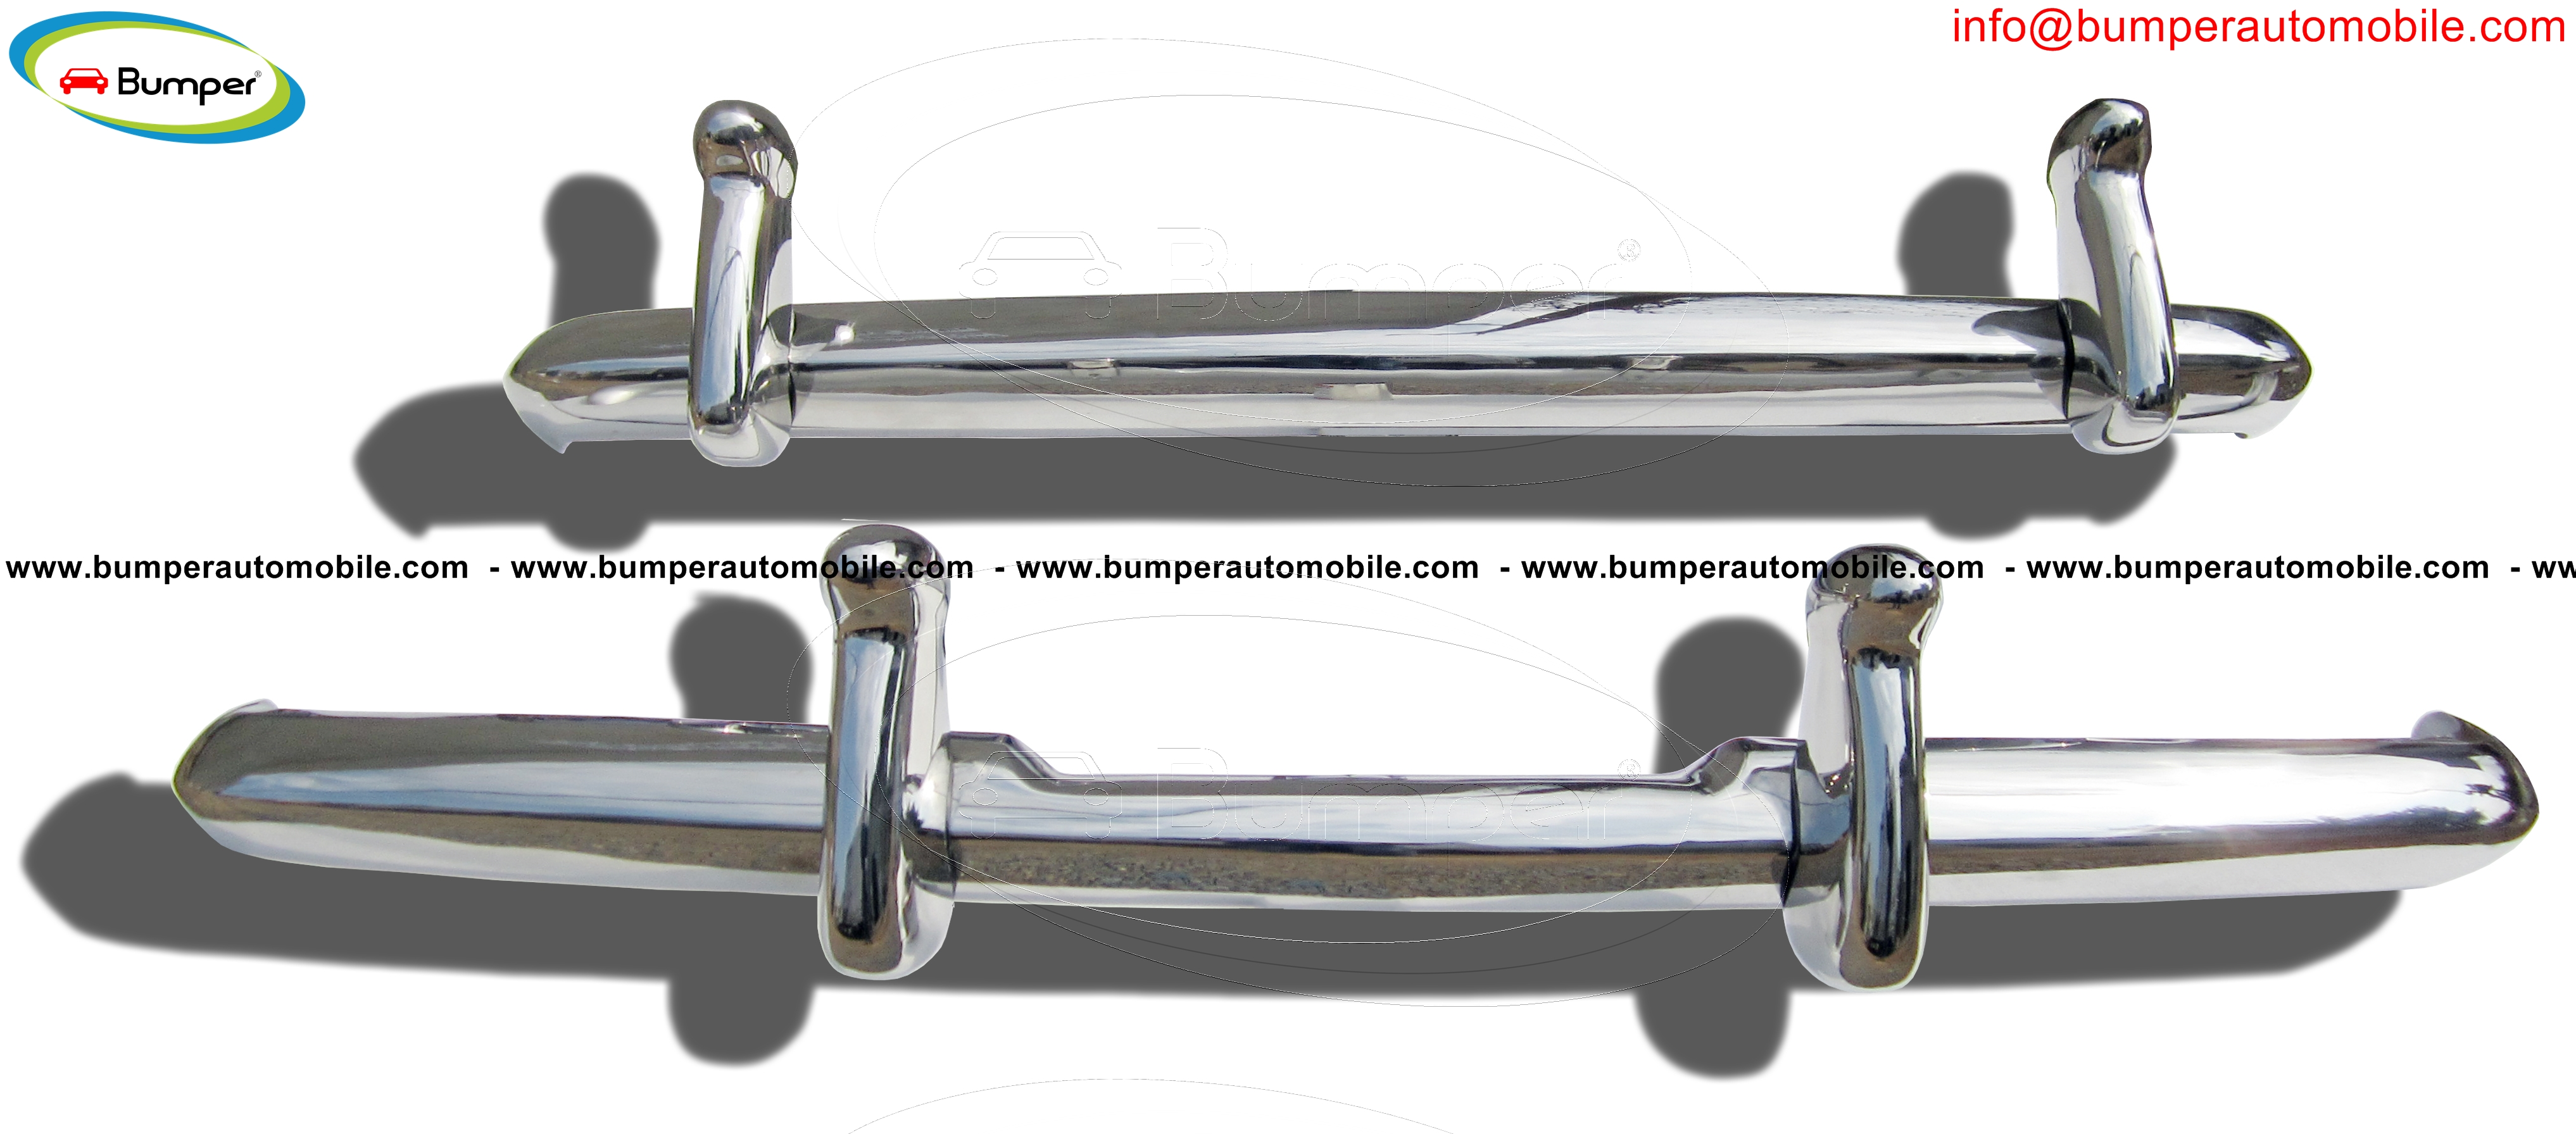 Full set Bentley S1, S2 and Rolls-royce Silver Cloud S1 S2 bumper stainless steel